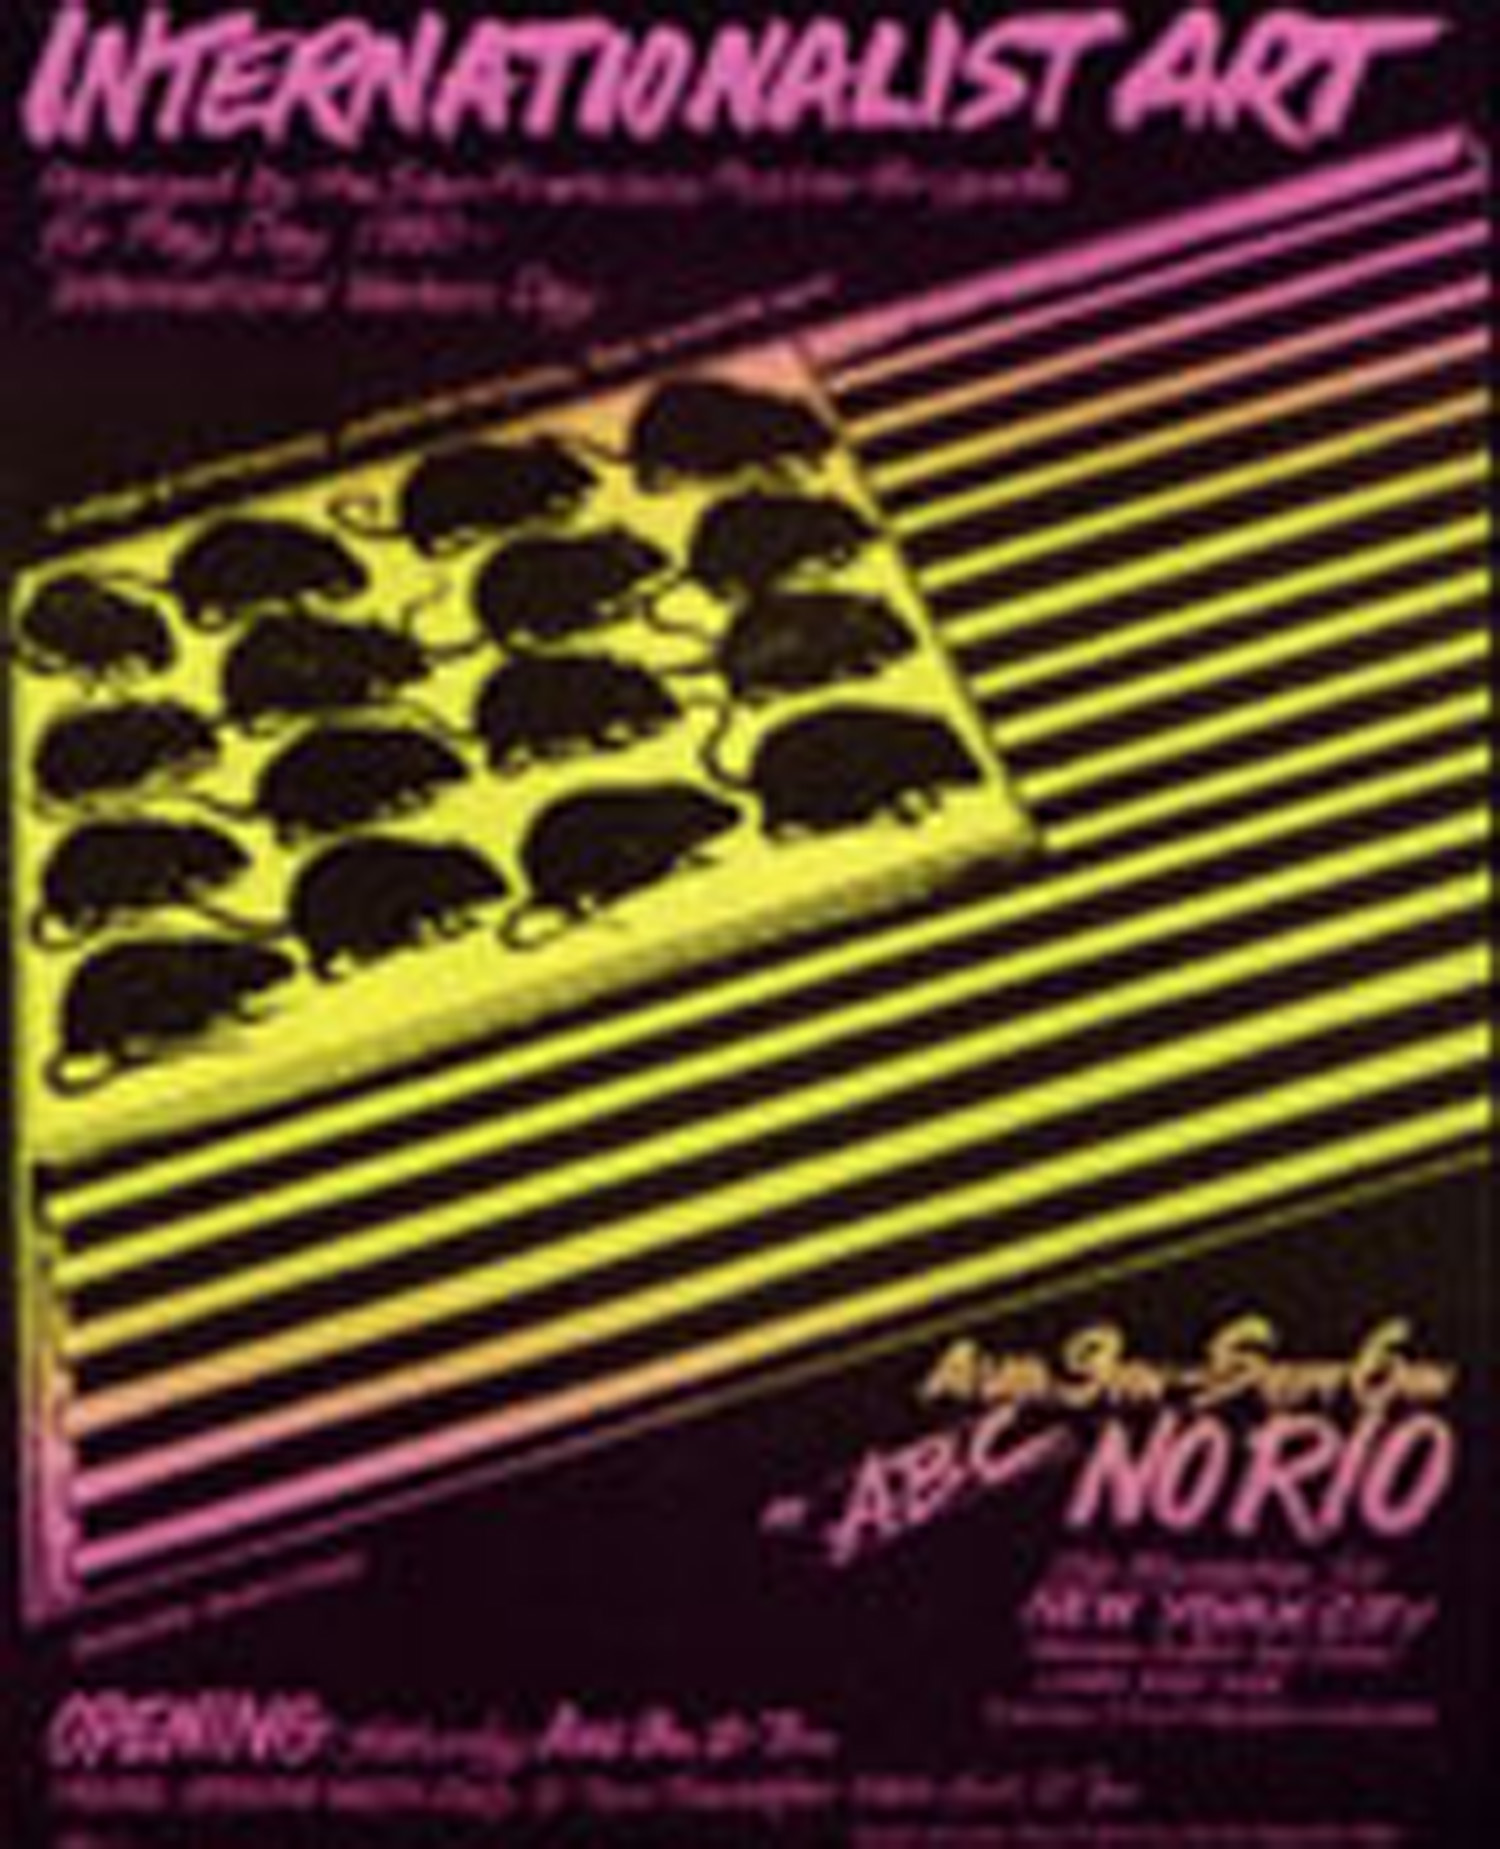 Poster designed by the San Francisco Poster Brigade for the No Rio Show, graphic by Bruno Caruso